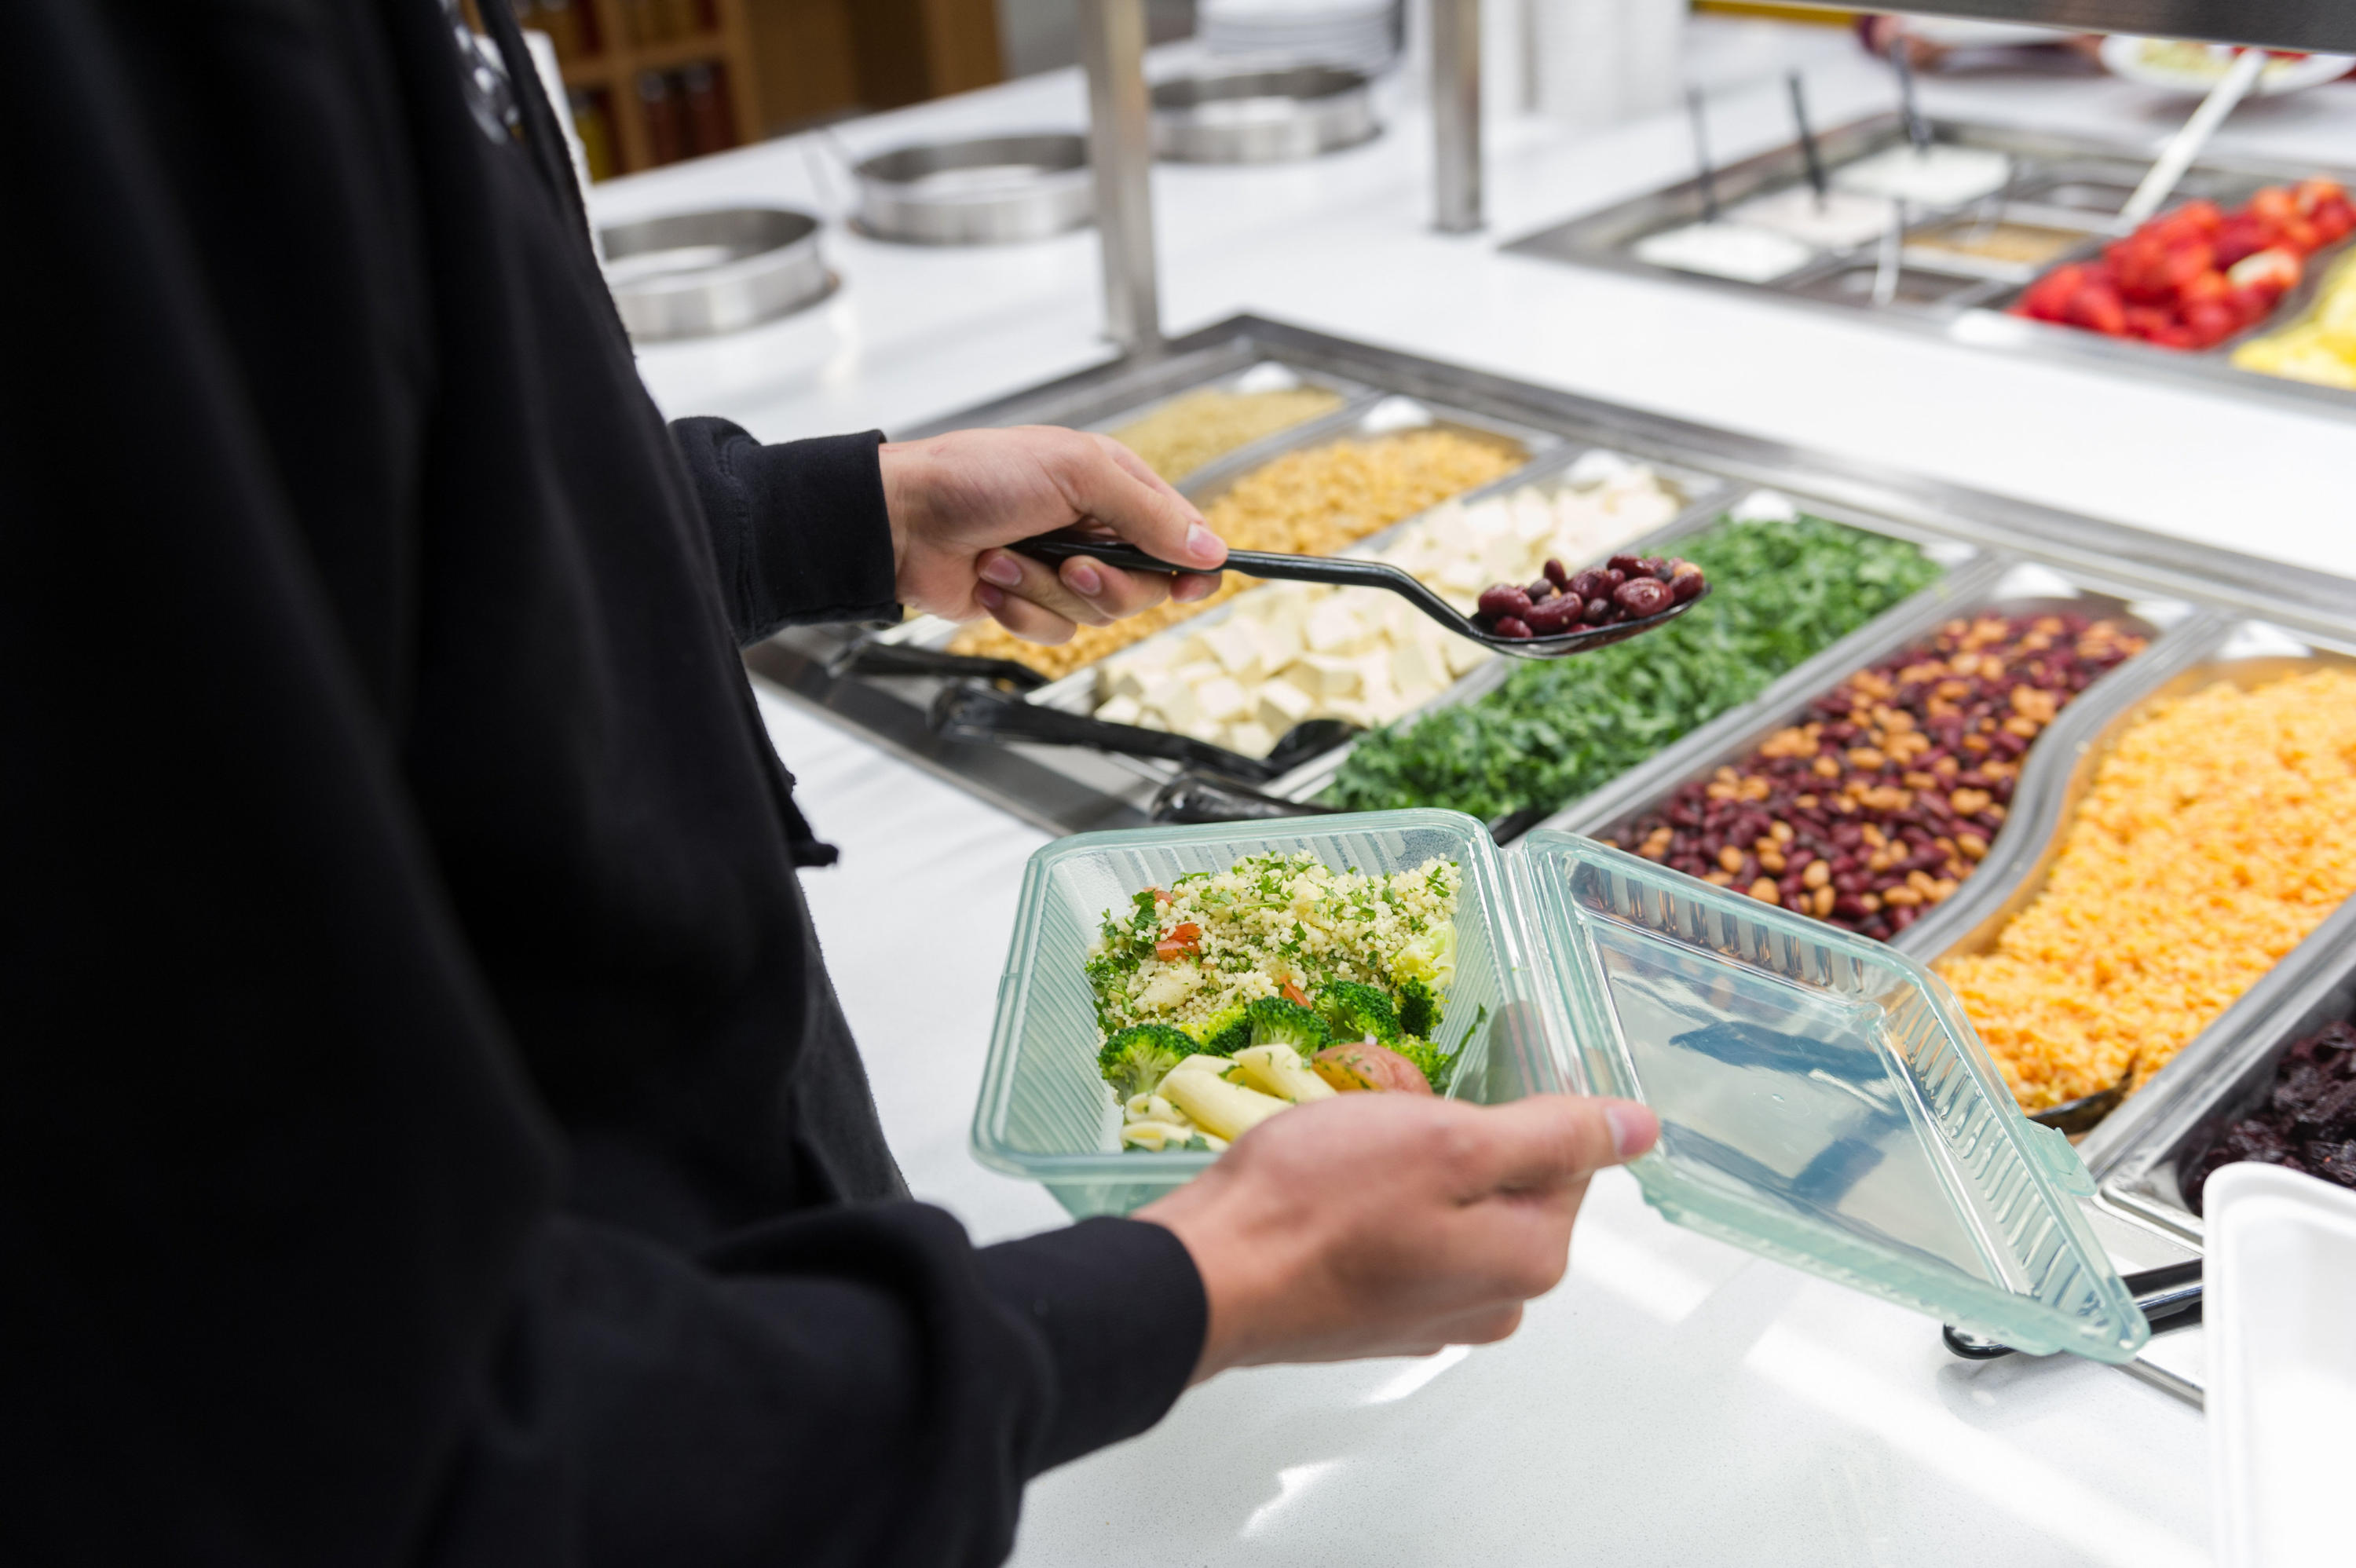 Student filling eco-container with food